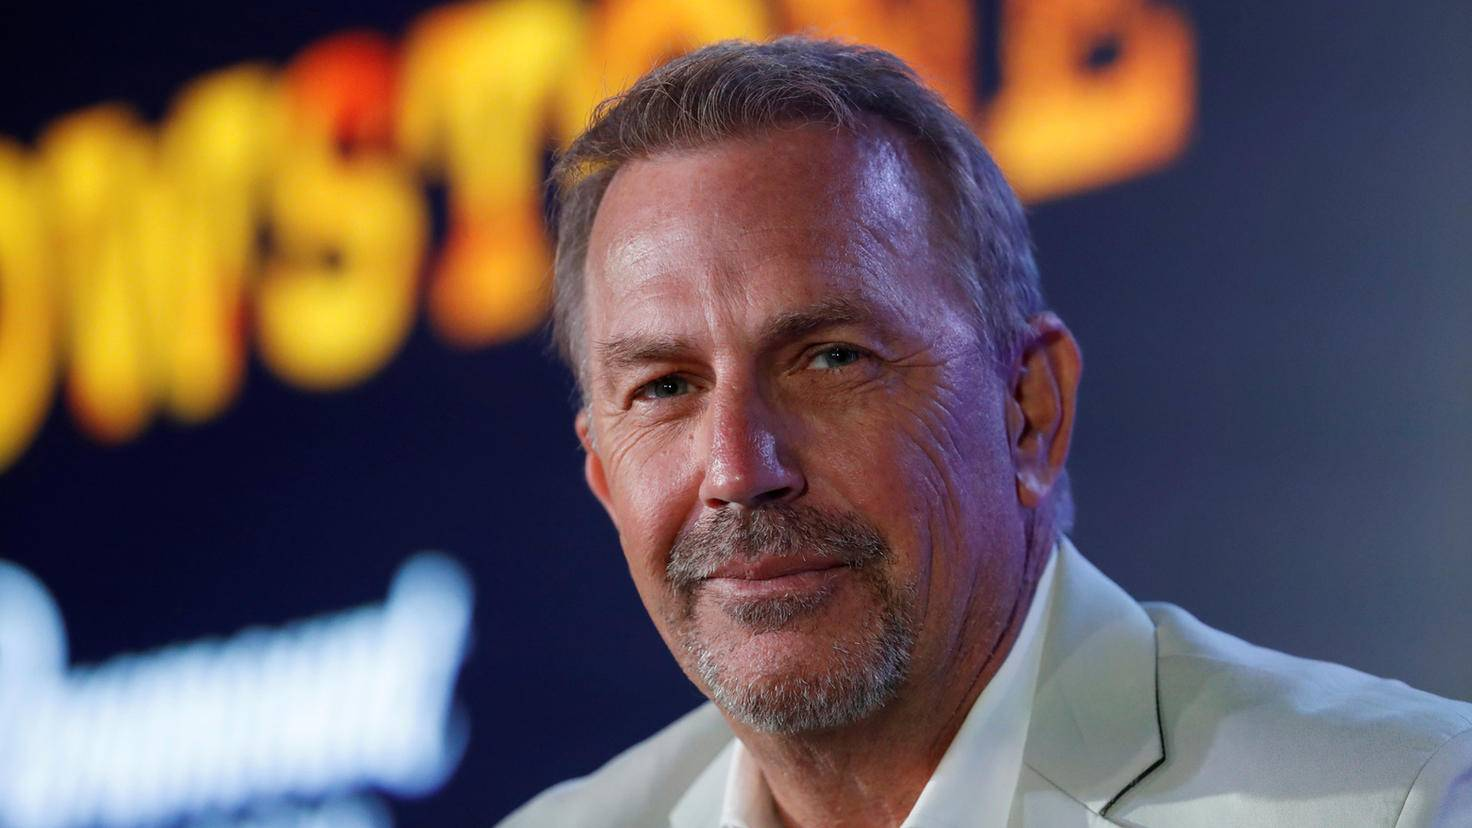 Actor Kevin Costner attends a conference at the Cannes Lions International Festival of Creativity, in Cannes